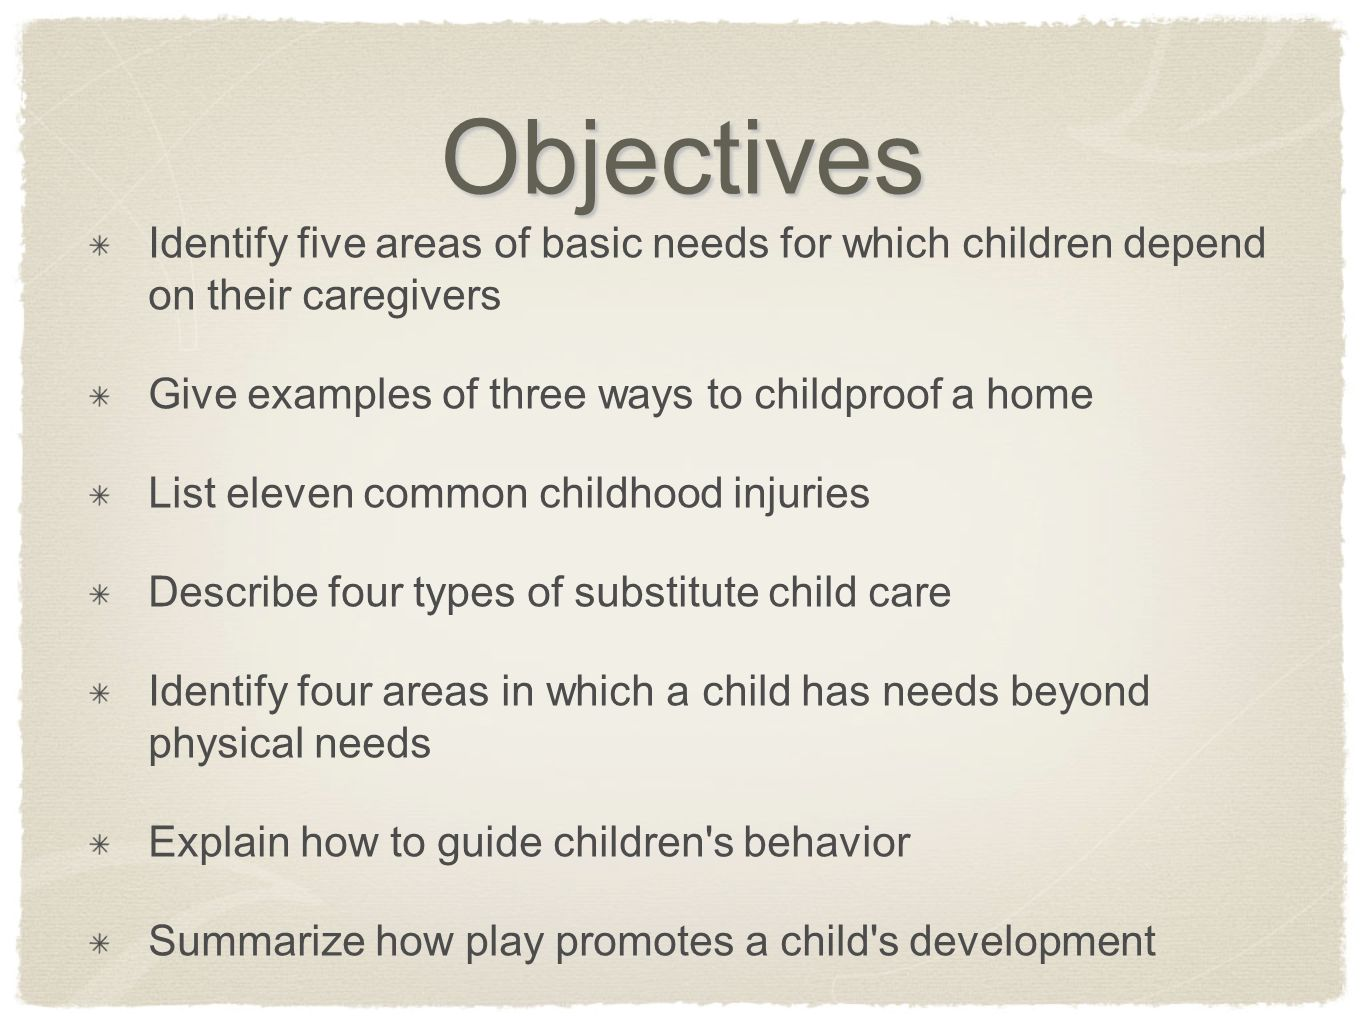 Objectives Identify five areas of basic needs for which children depend on their caregivers. Give examples of three ways to childproof a home.